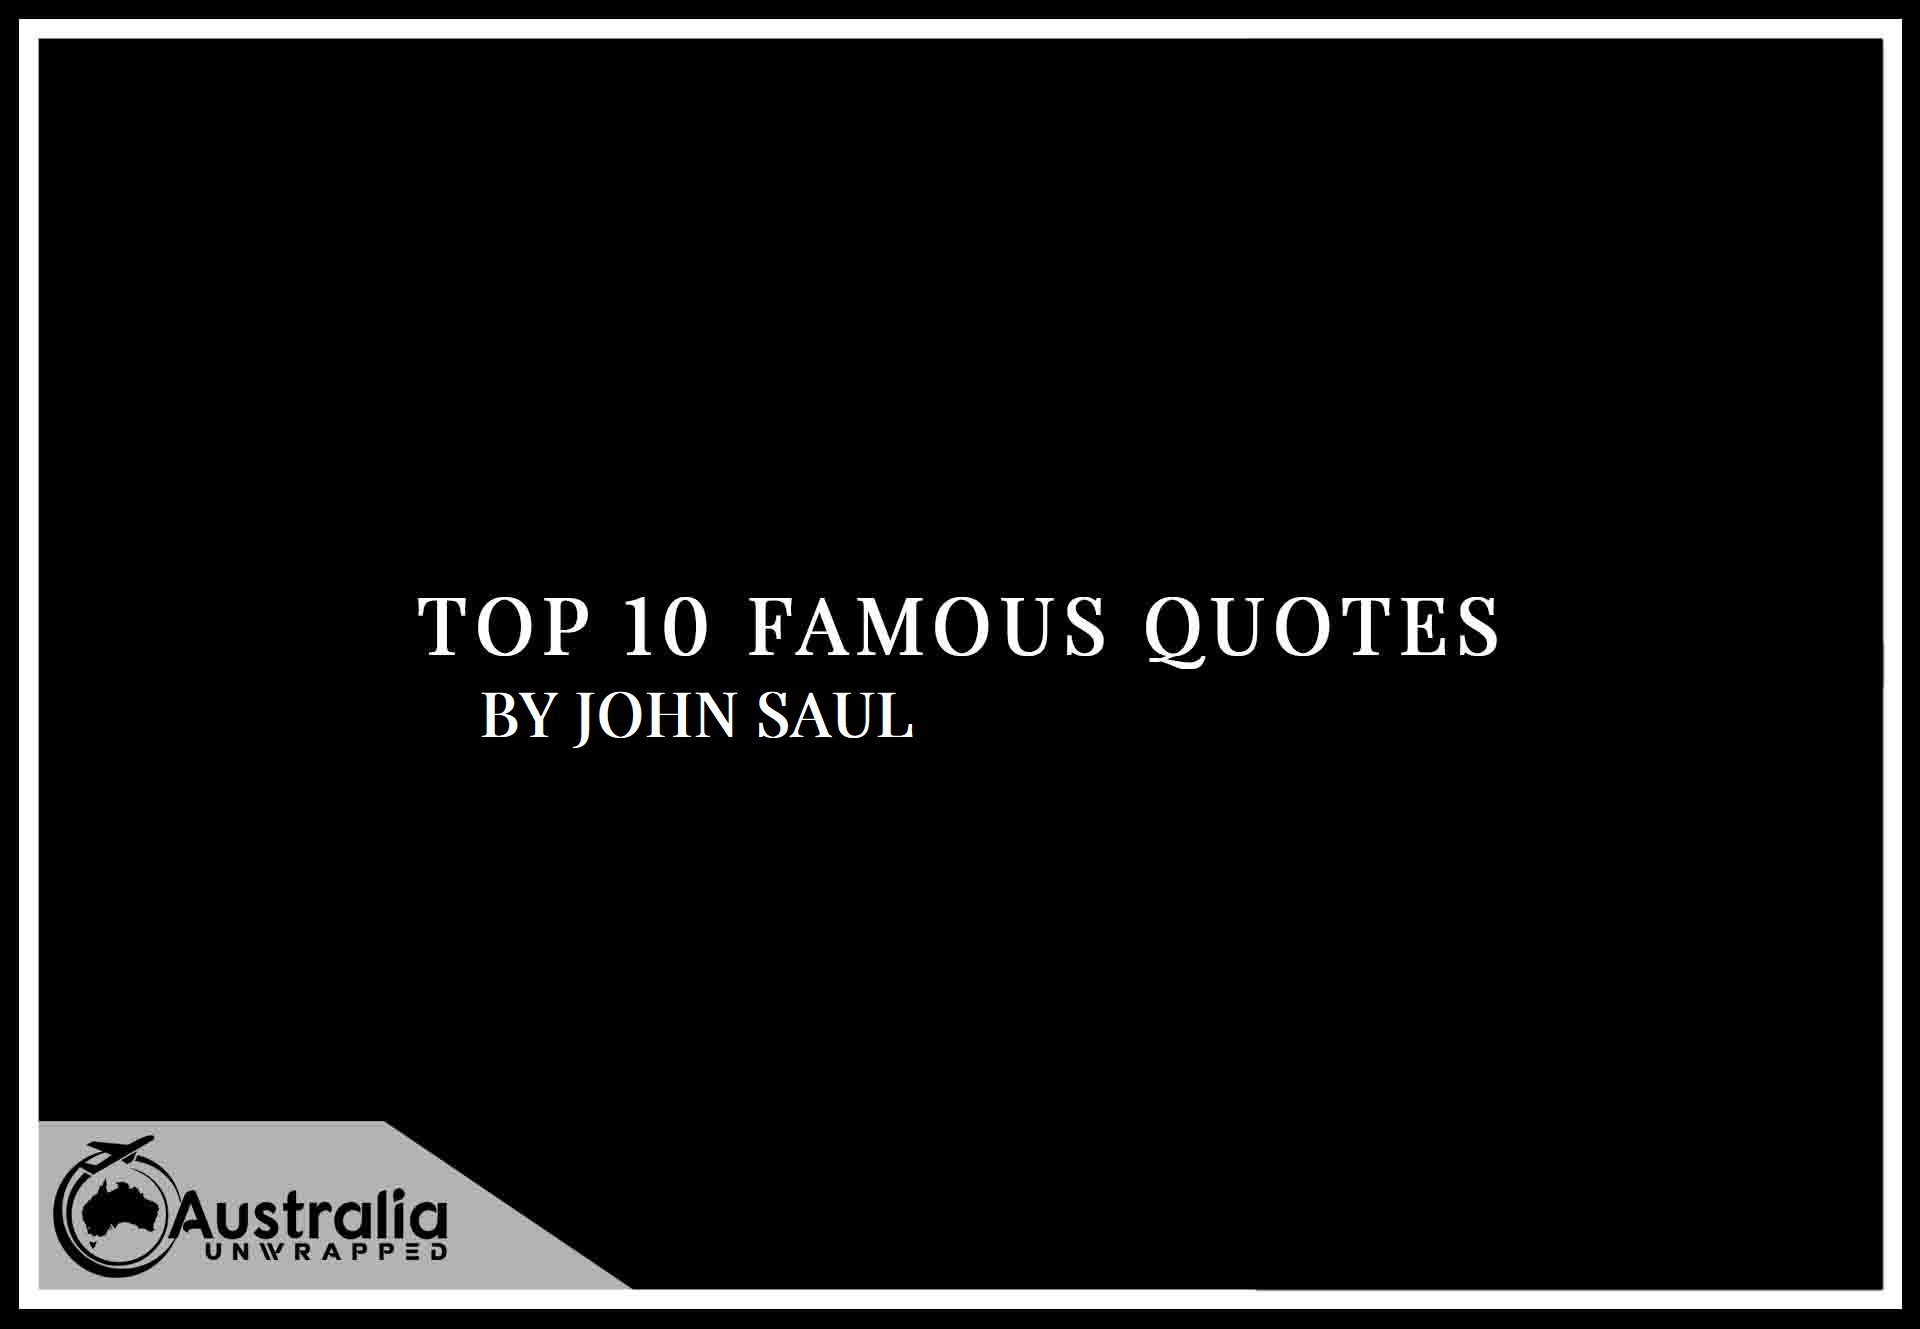 Top 10 Famous Quotes by Author John Saul